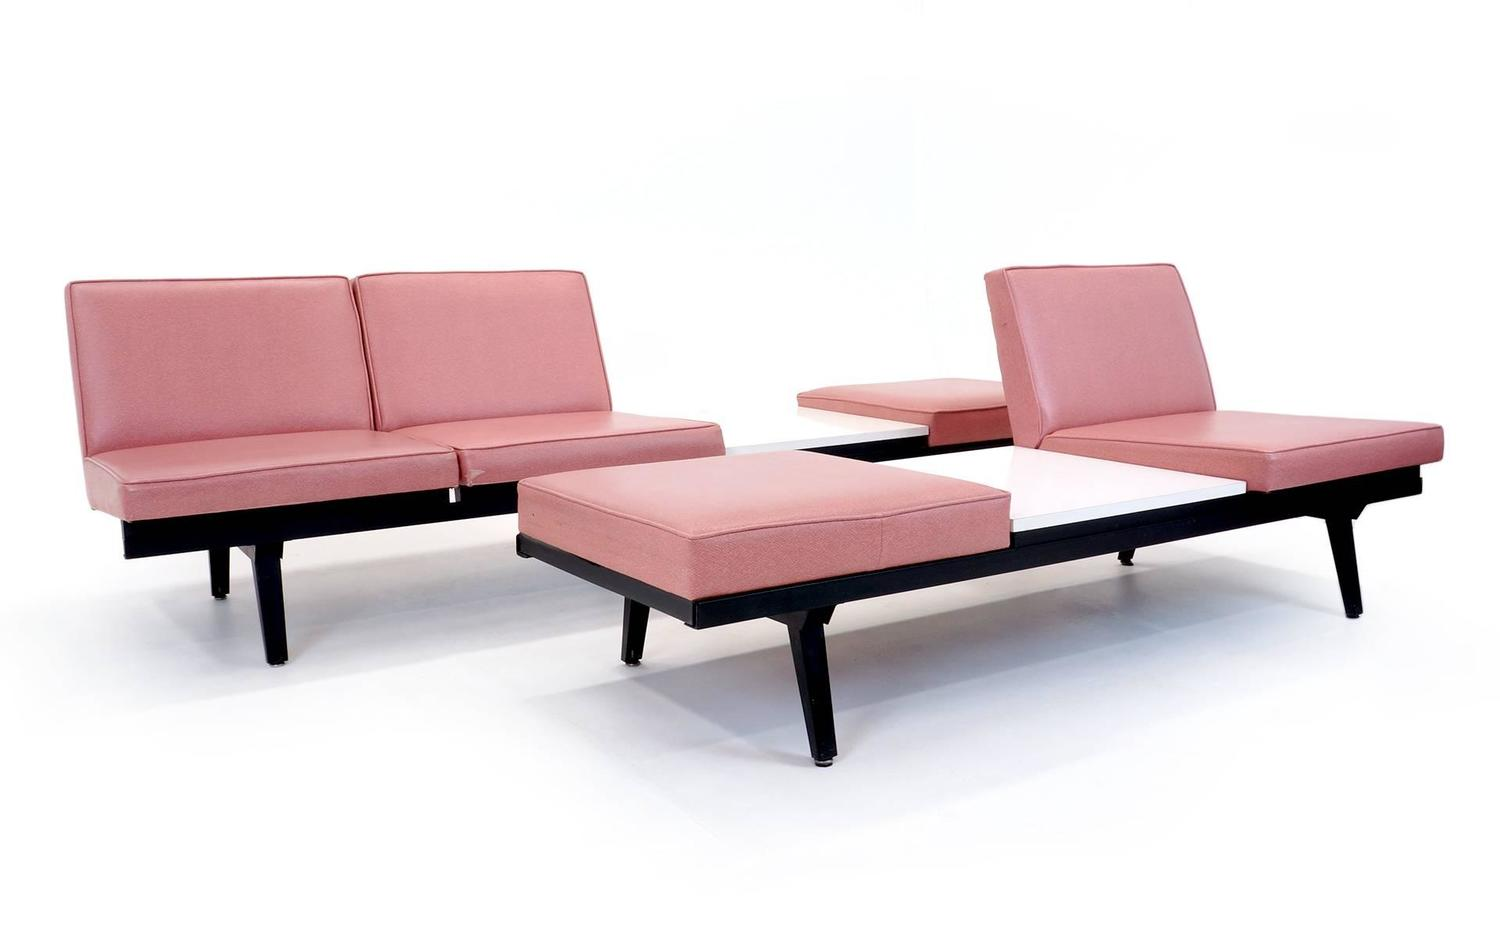 Pair Of George Nelson For Herman Miller Steel Frame Sofas Modular Seating At 1stdibs